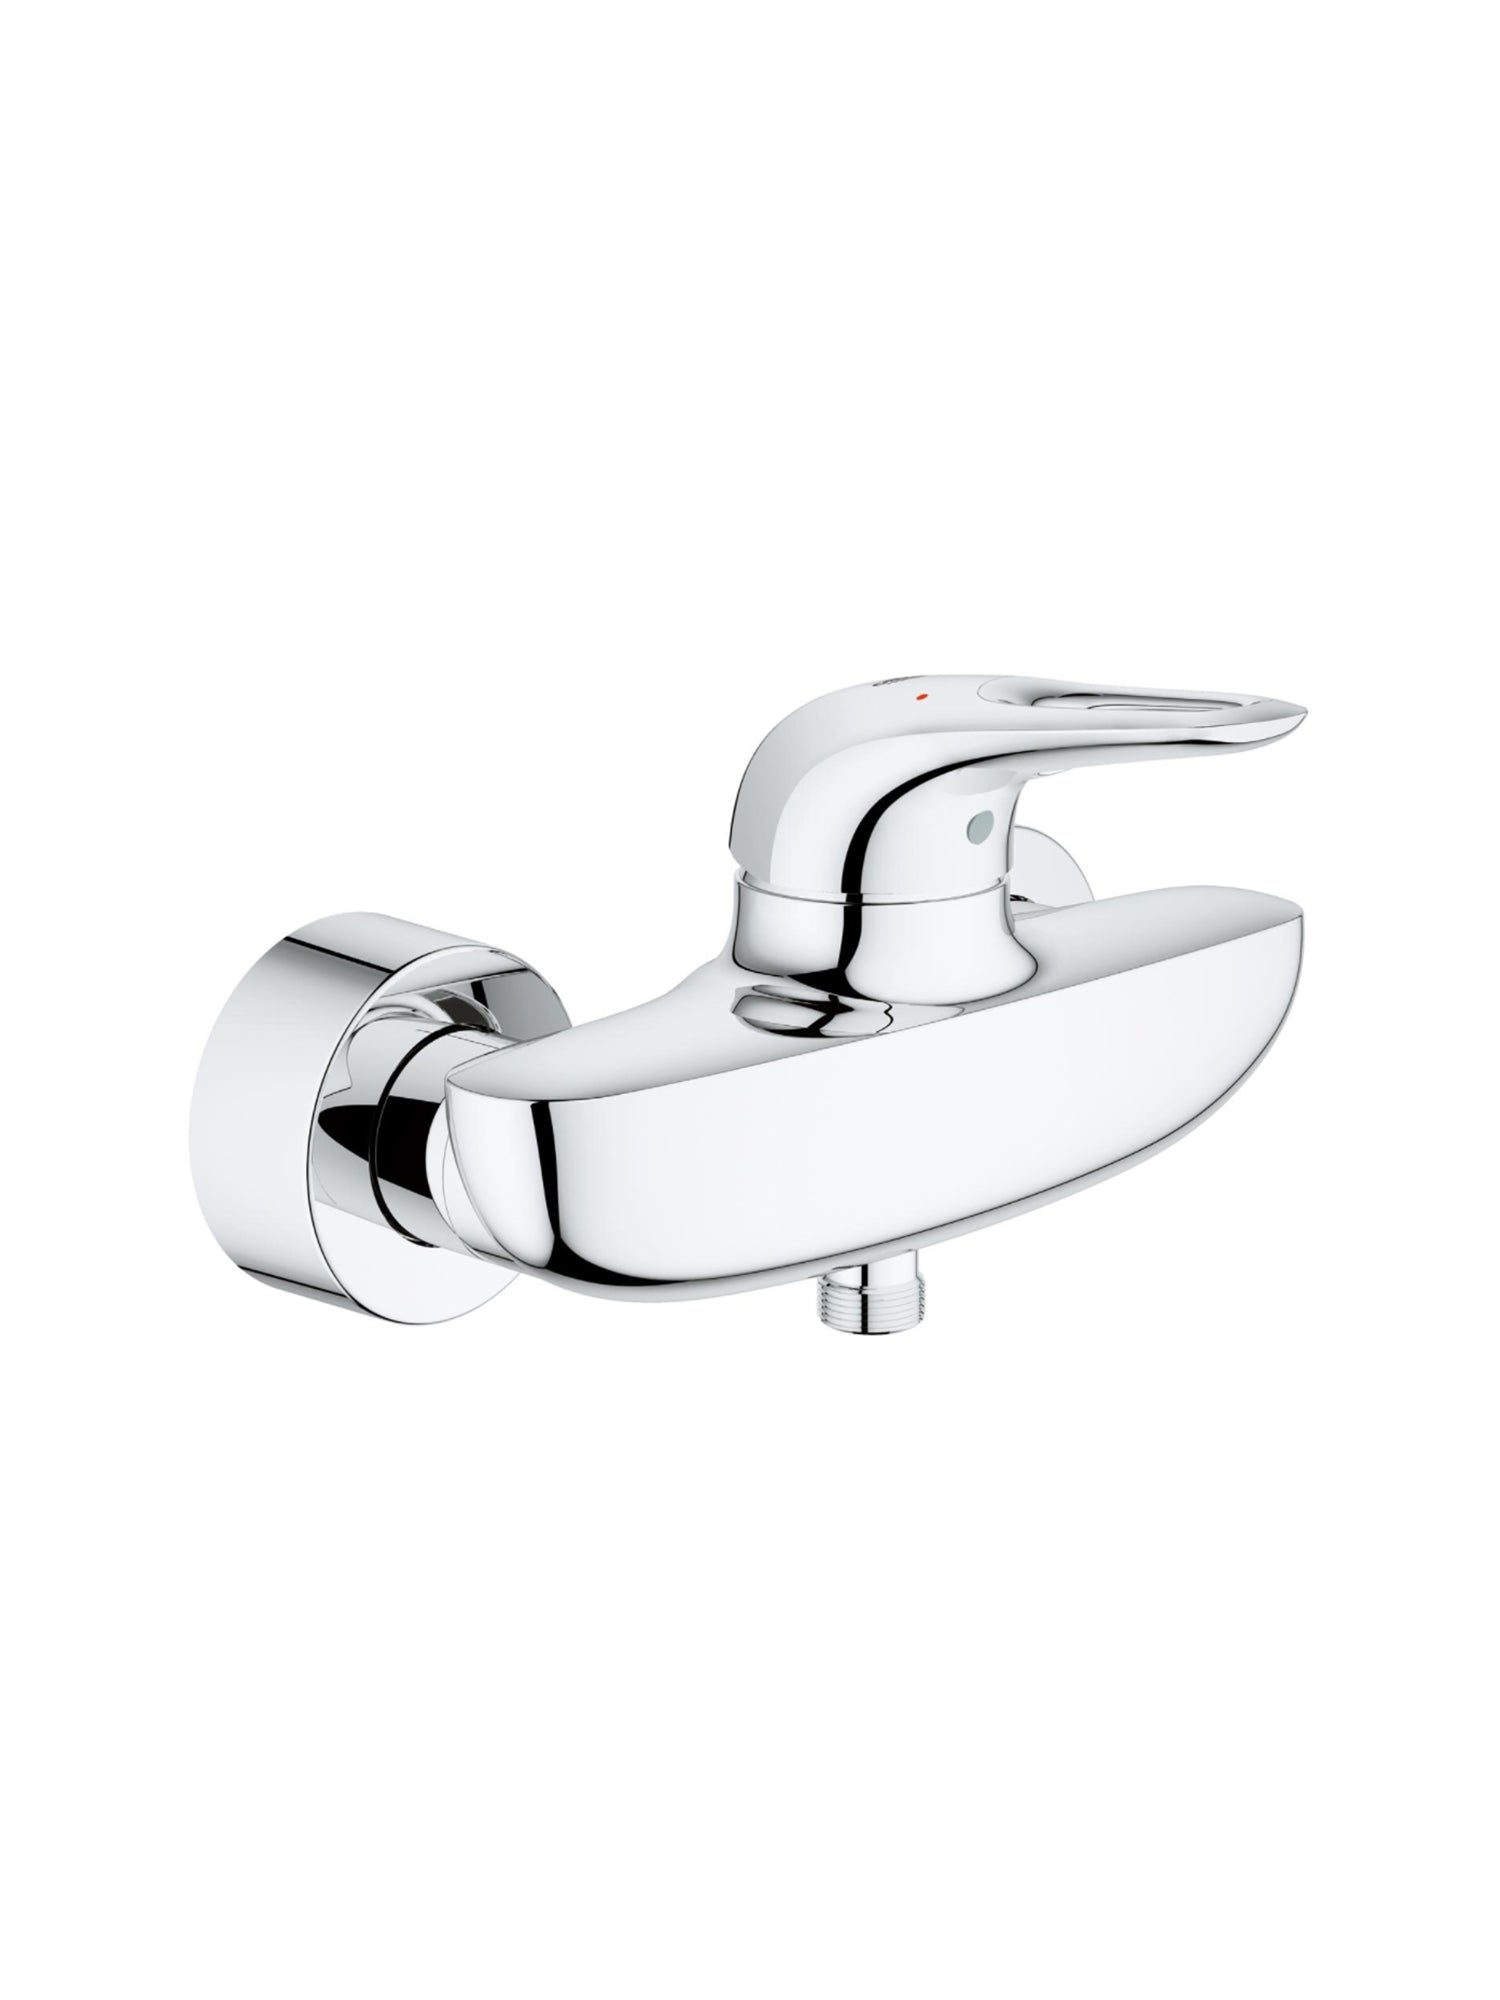 Eurostyle Wall-mounted Shower Mixer #33590003